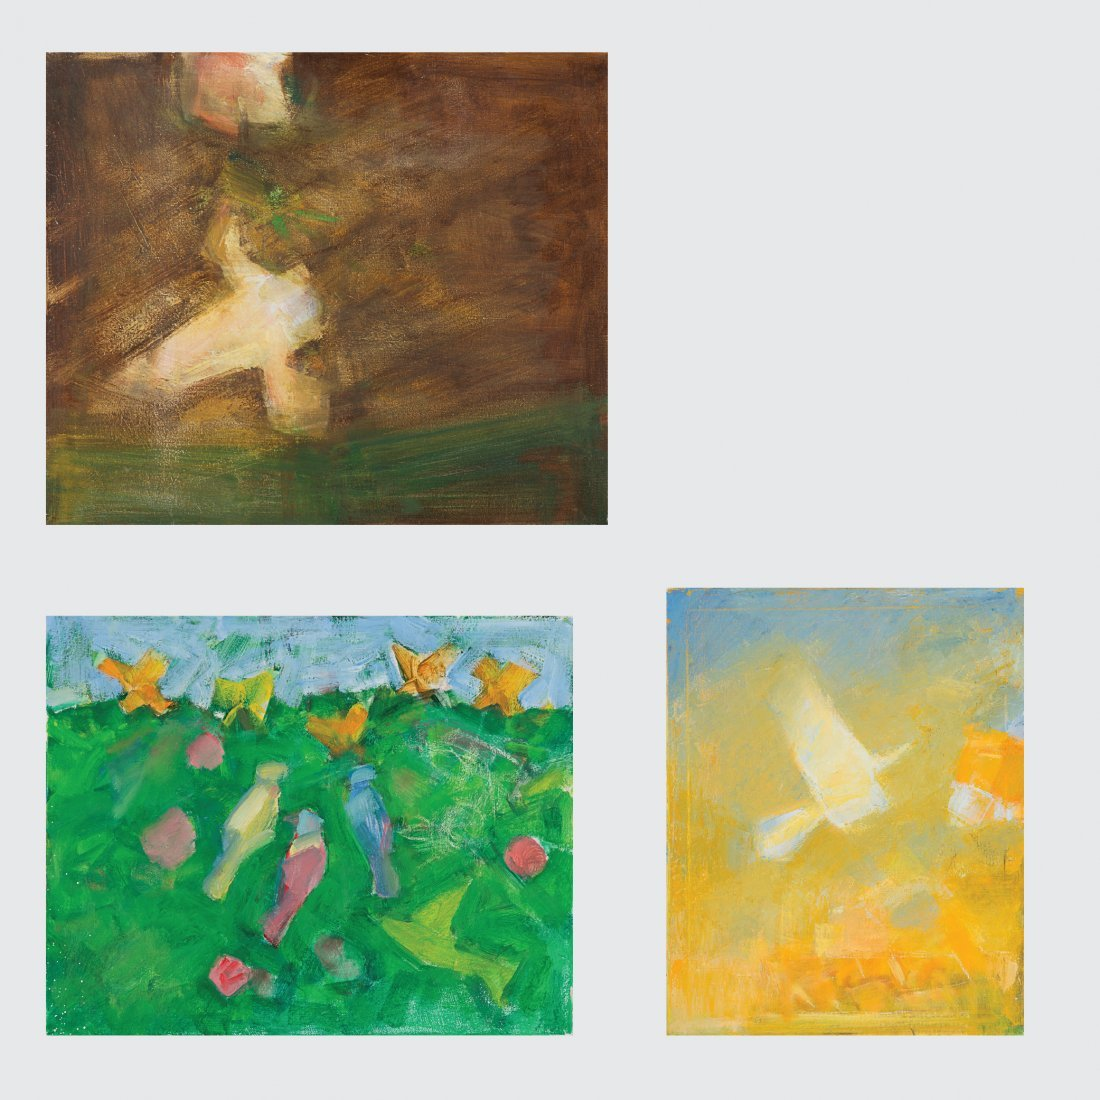 Marco De Marco (1918-2015) A Group of Three Studies of